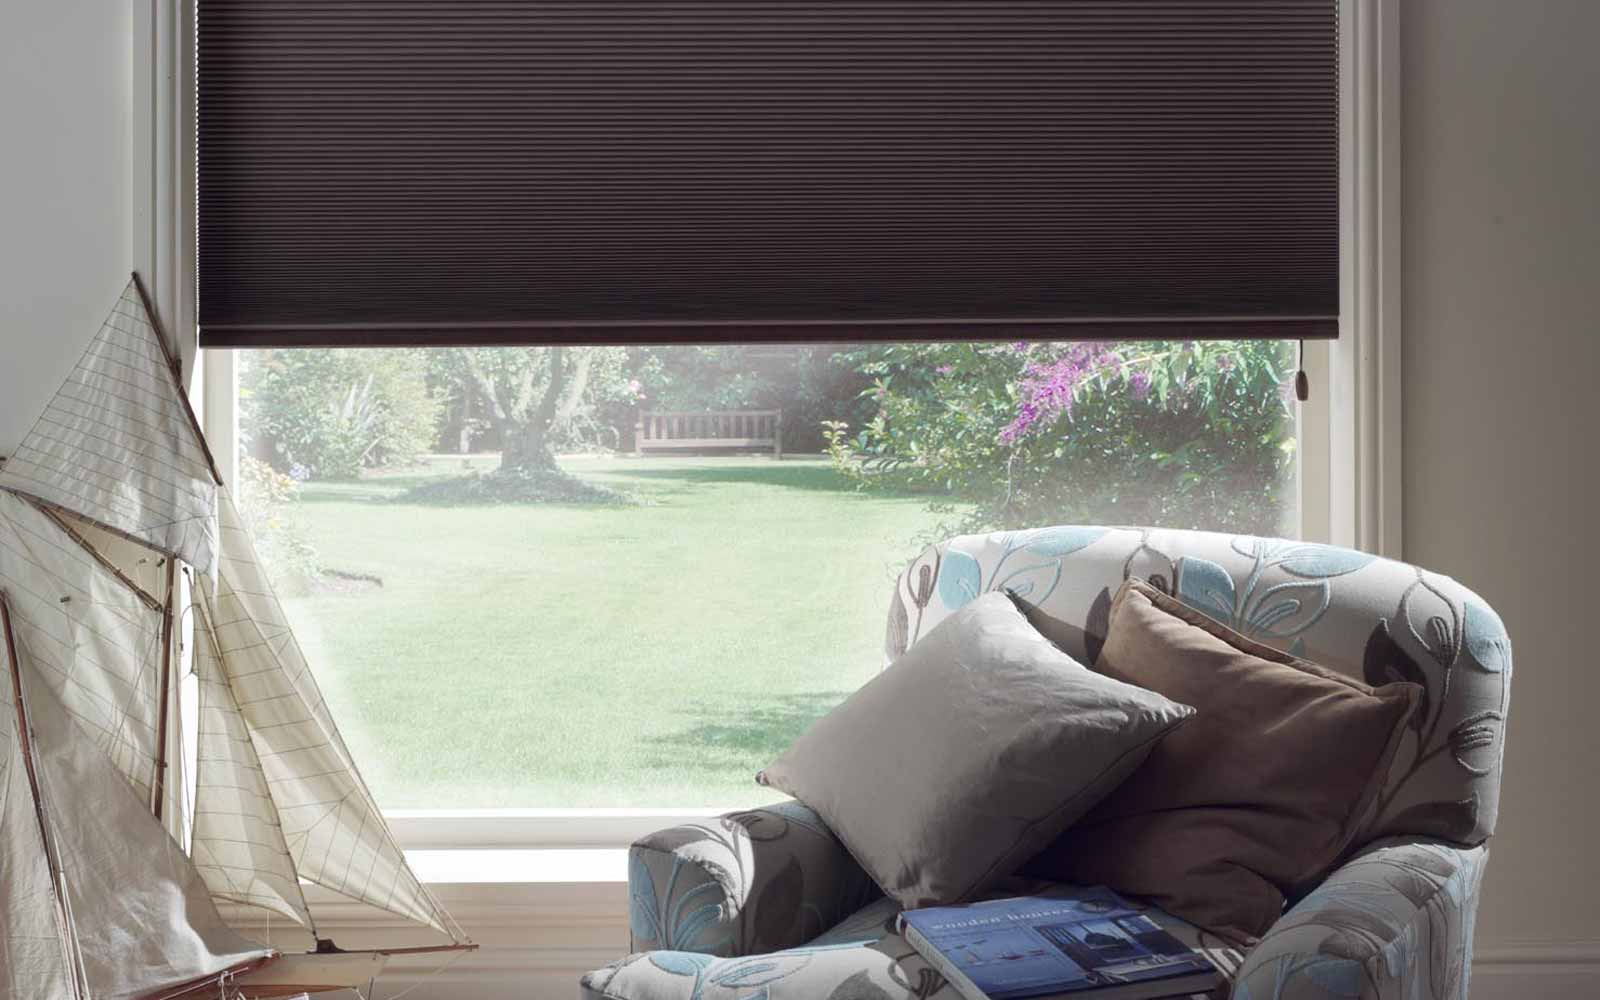 Pleated blinds in a living room